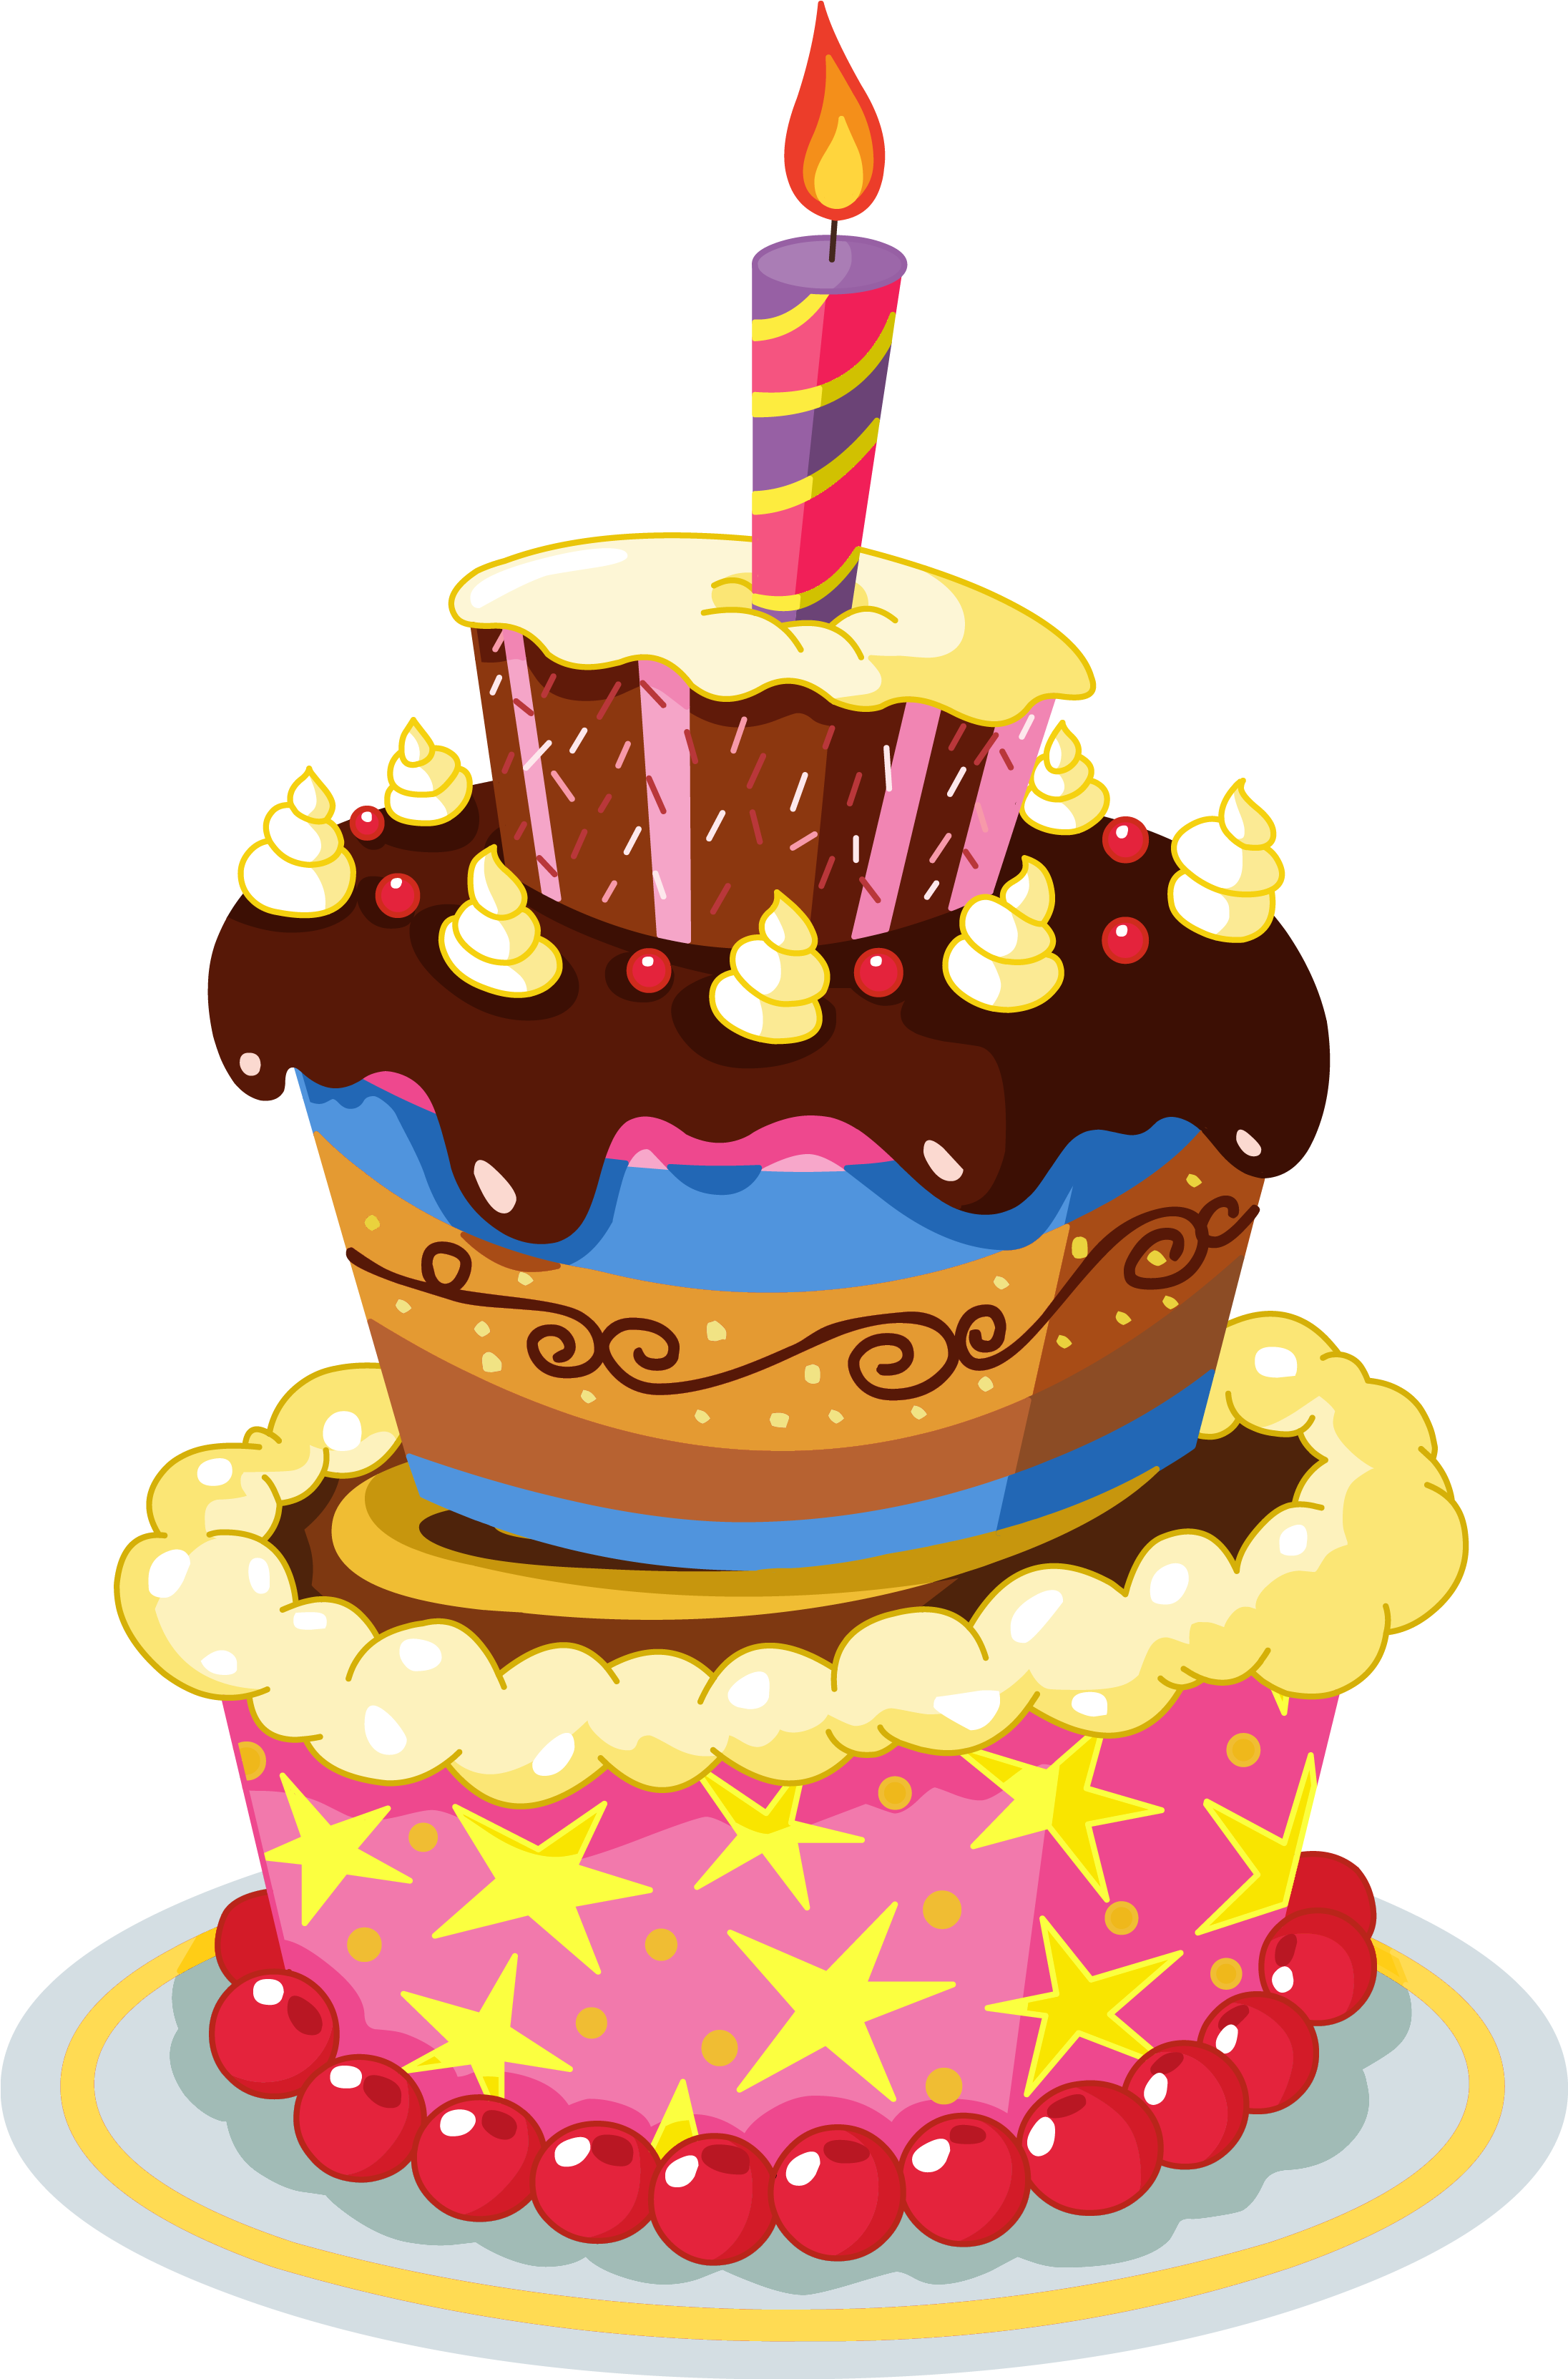 Birthday Cake No Background Png - 12,549 transparent png ...